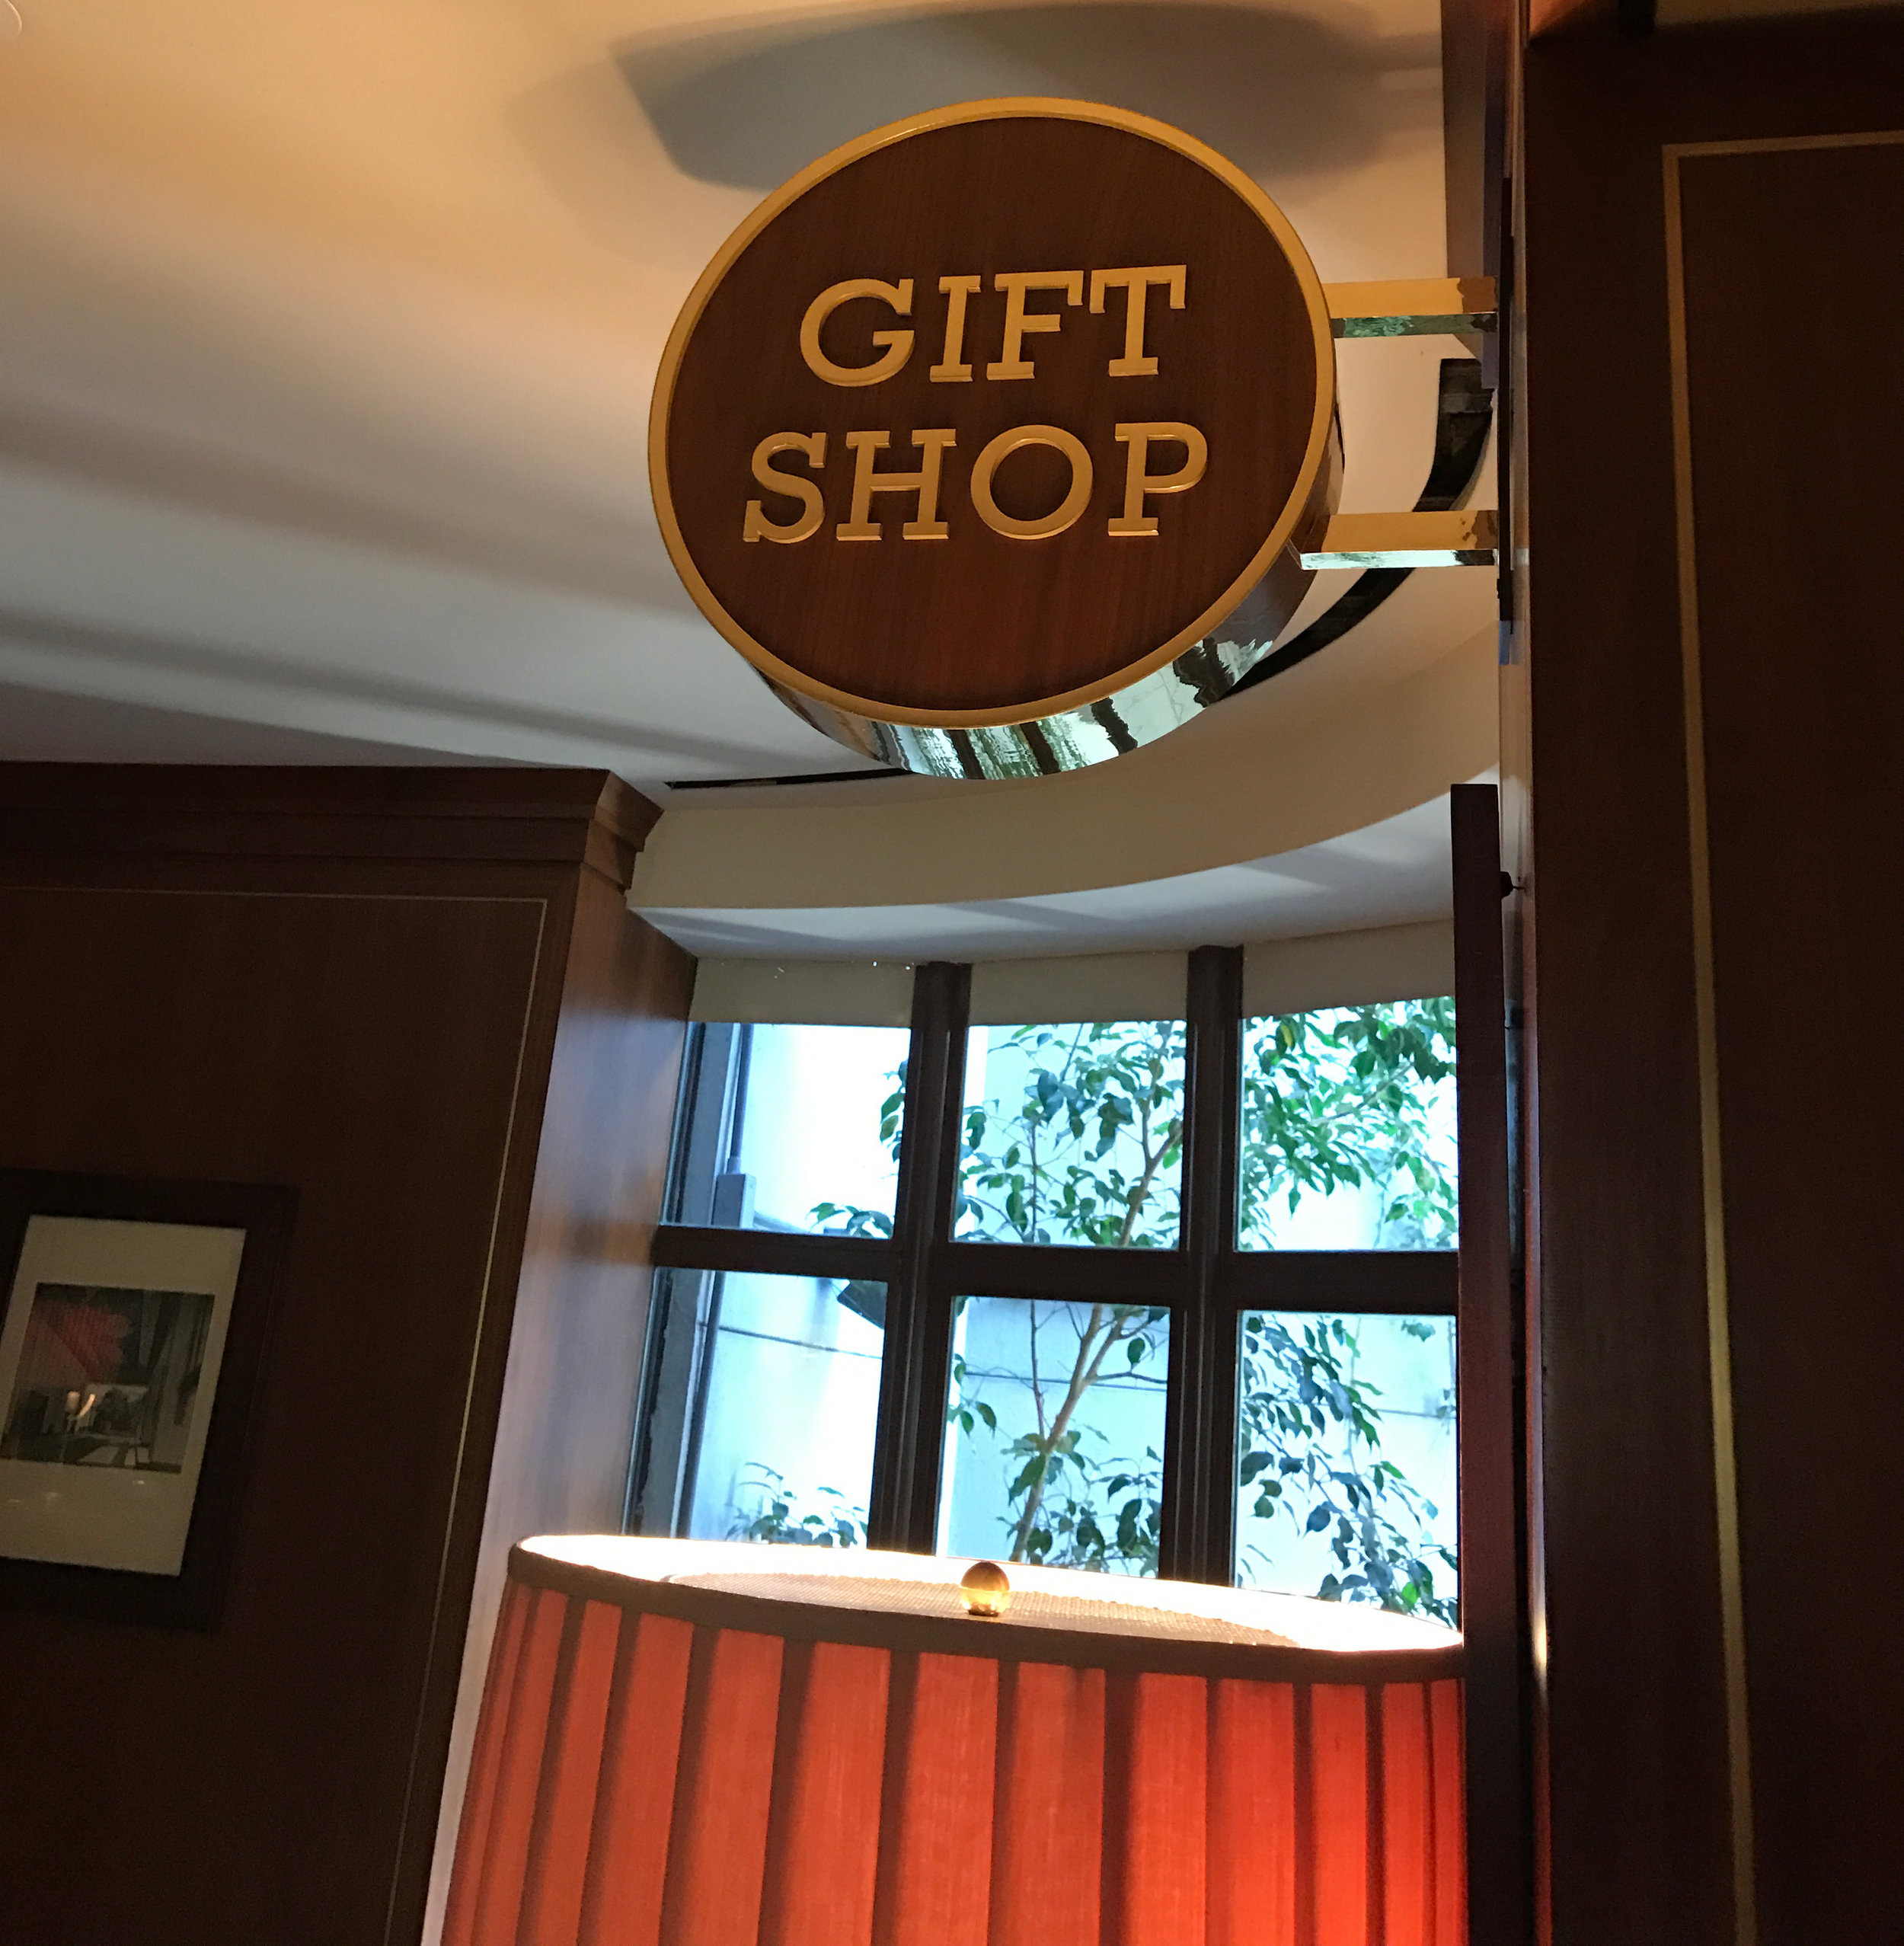 st_gift-shop-sign.jpg